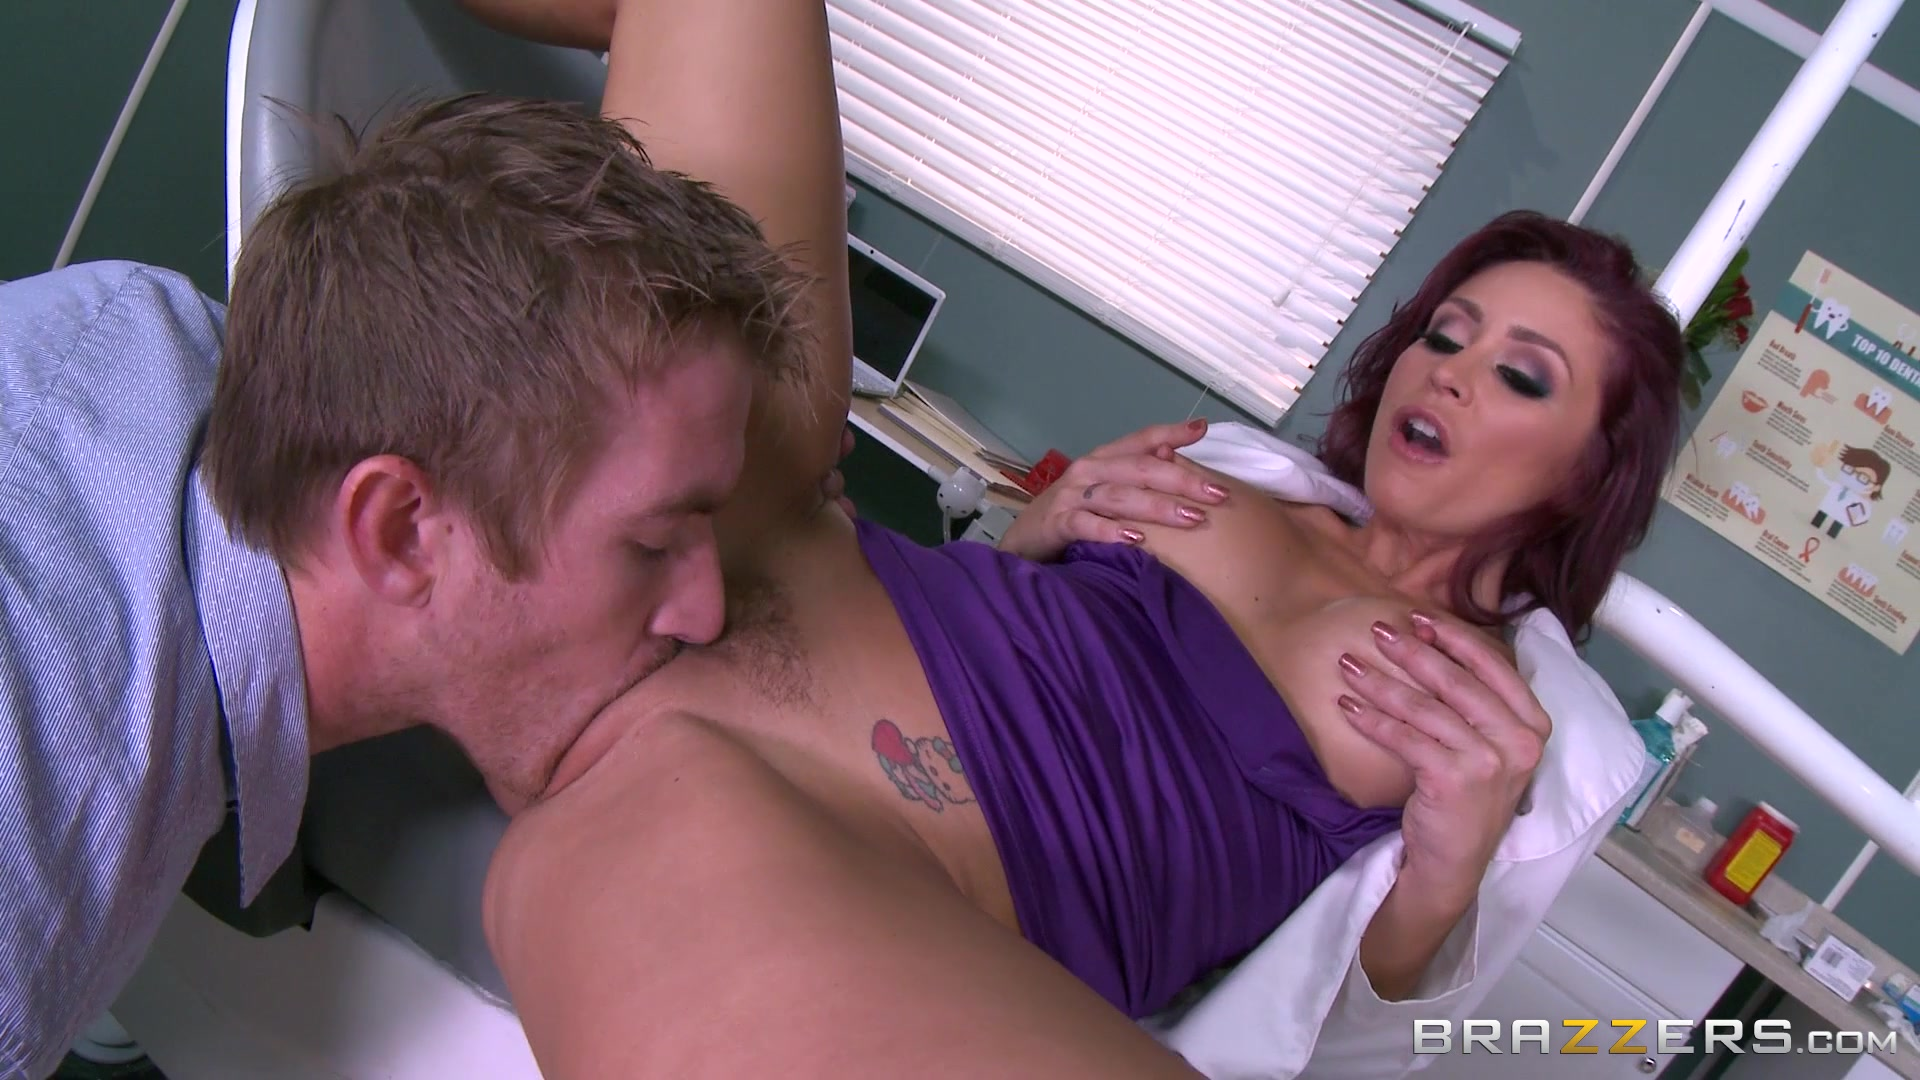 Brazzers dirty doctors august and isis share a cock 2